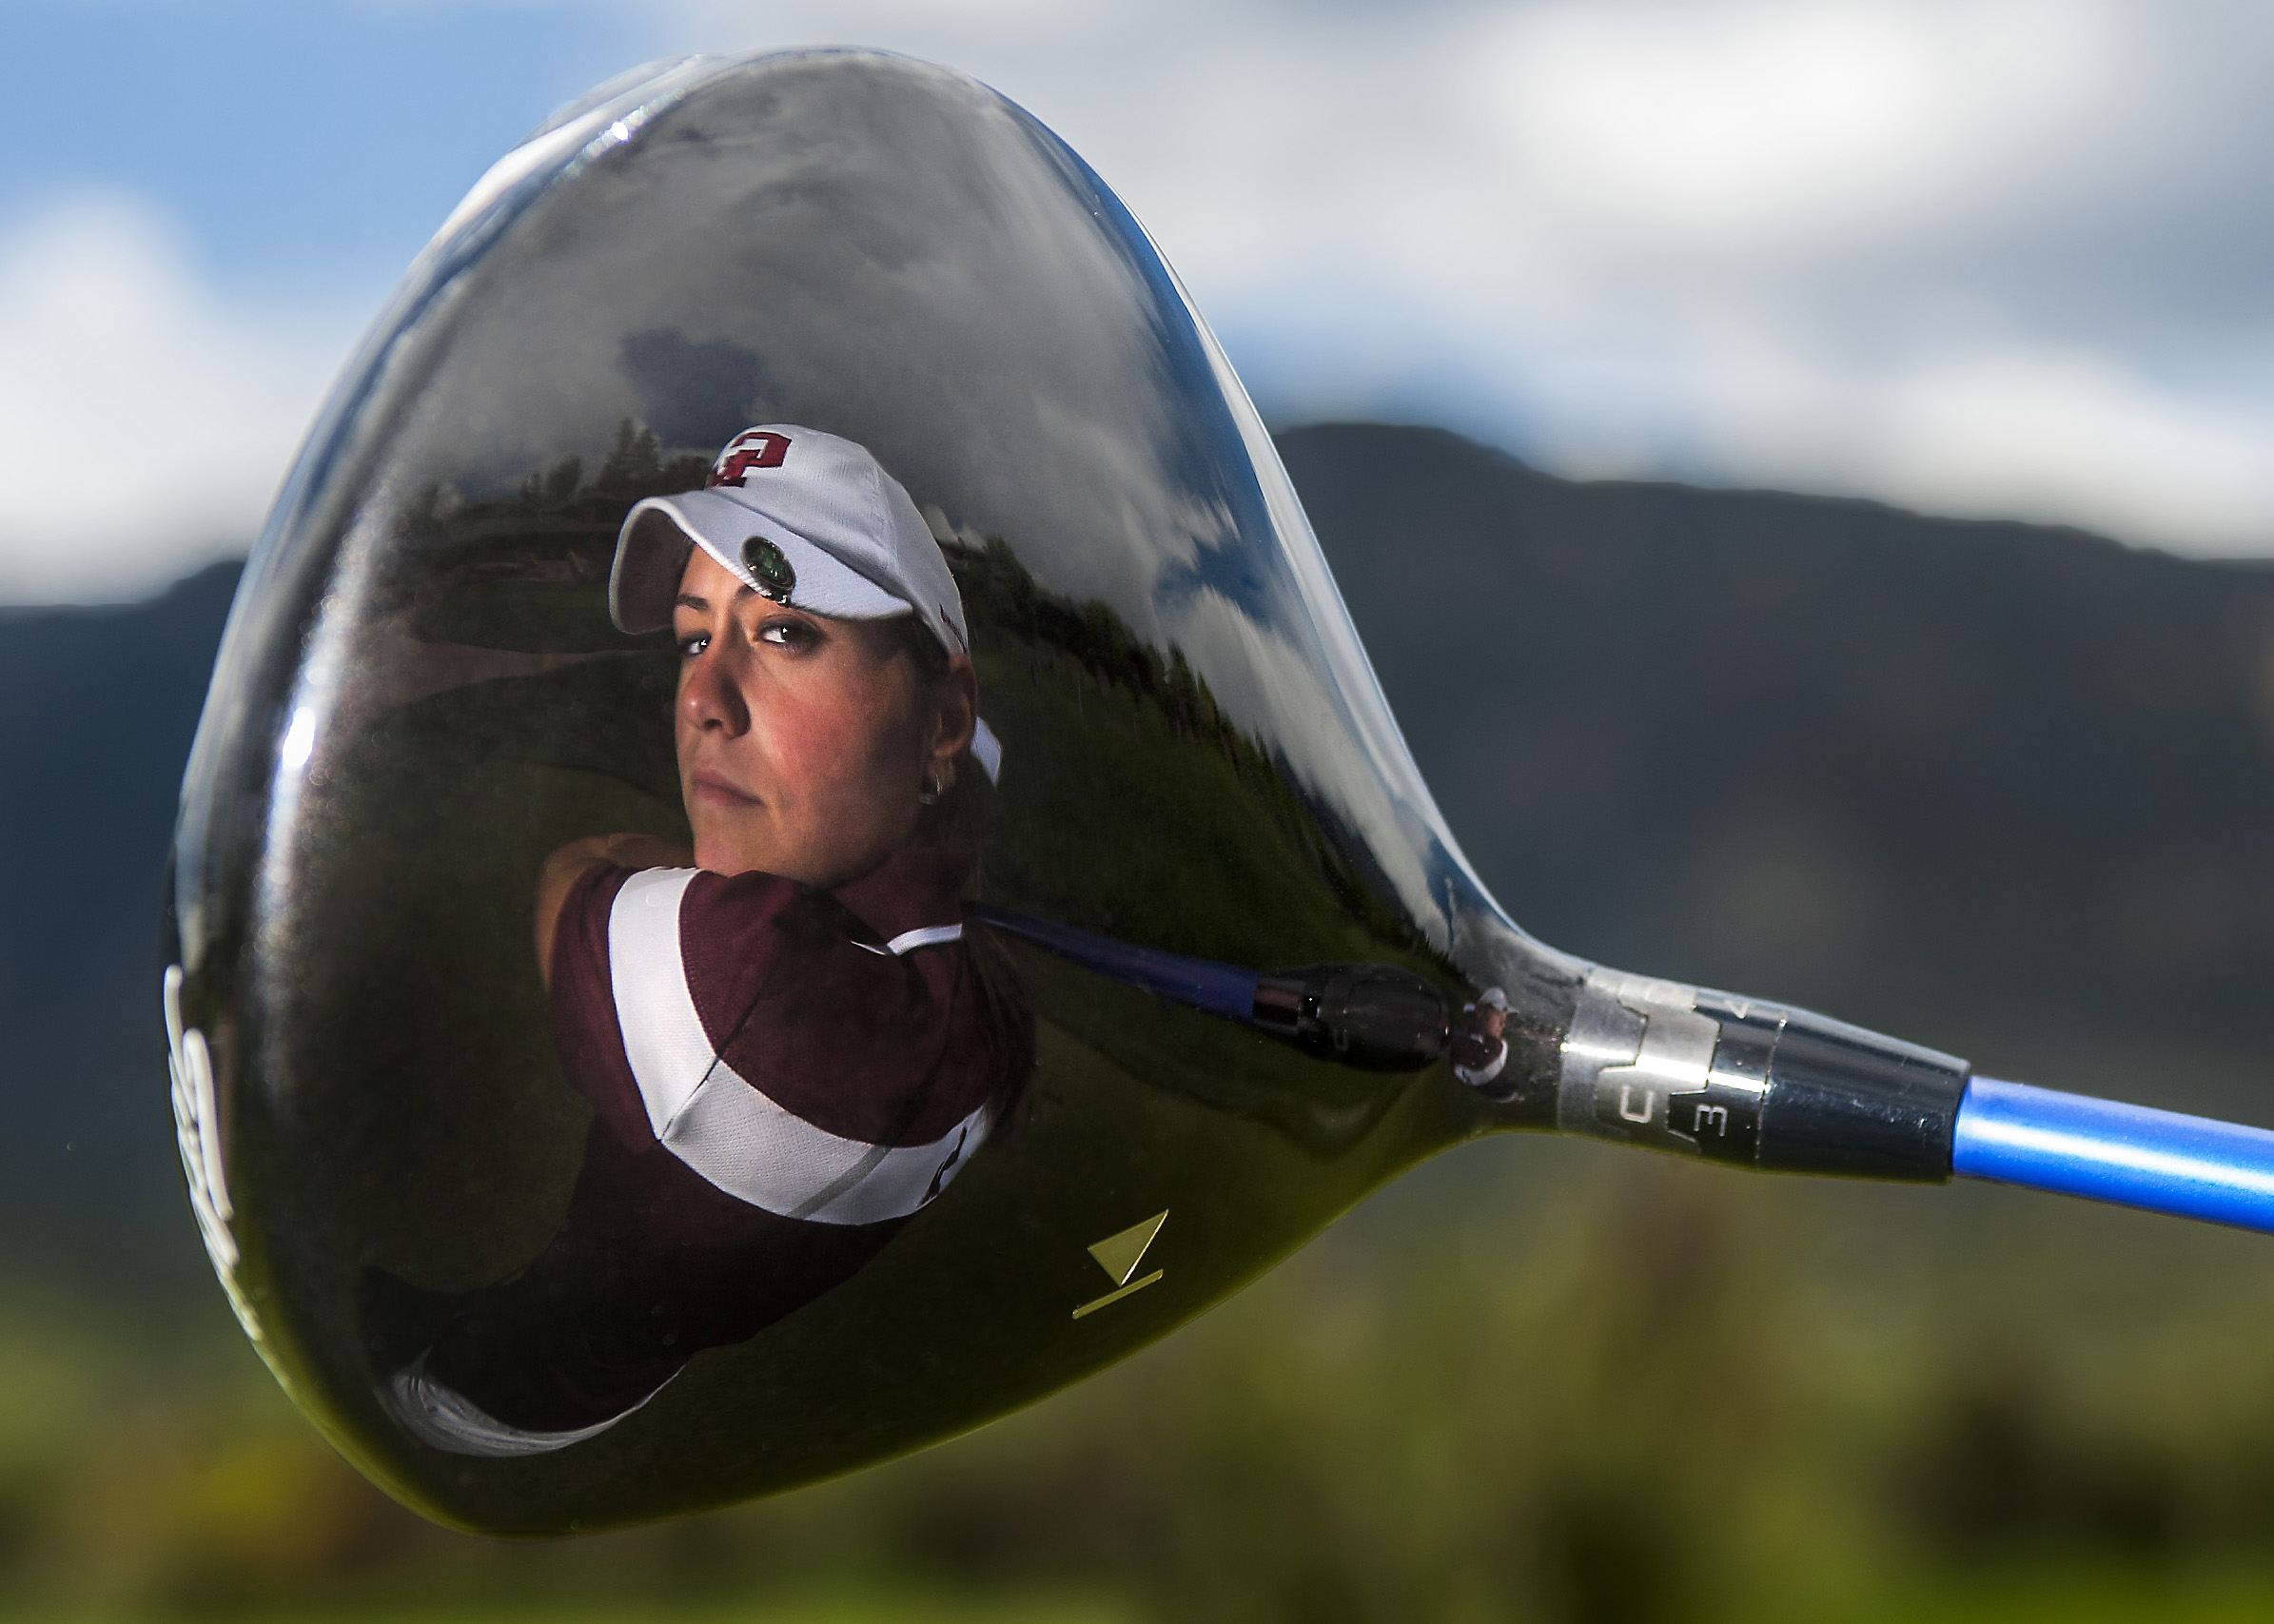 Cheyenne Mountain's Kyle Sullivan is The Gazette Peak Performer of the Year for women's golf. She was photographed at her home course Country Club of Colorado on Wednesday, May 27, 2015.